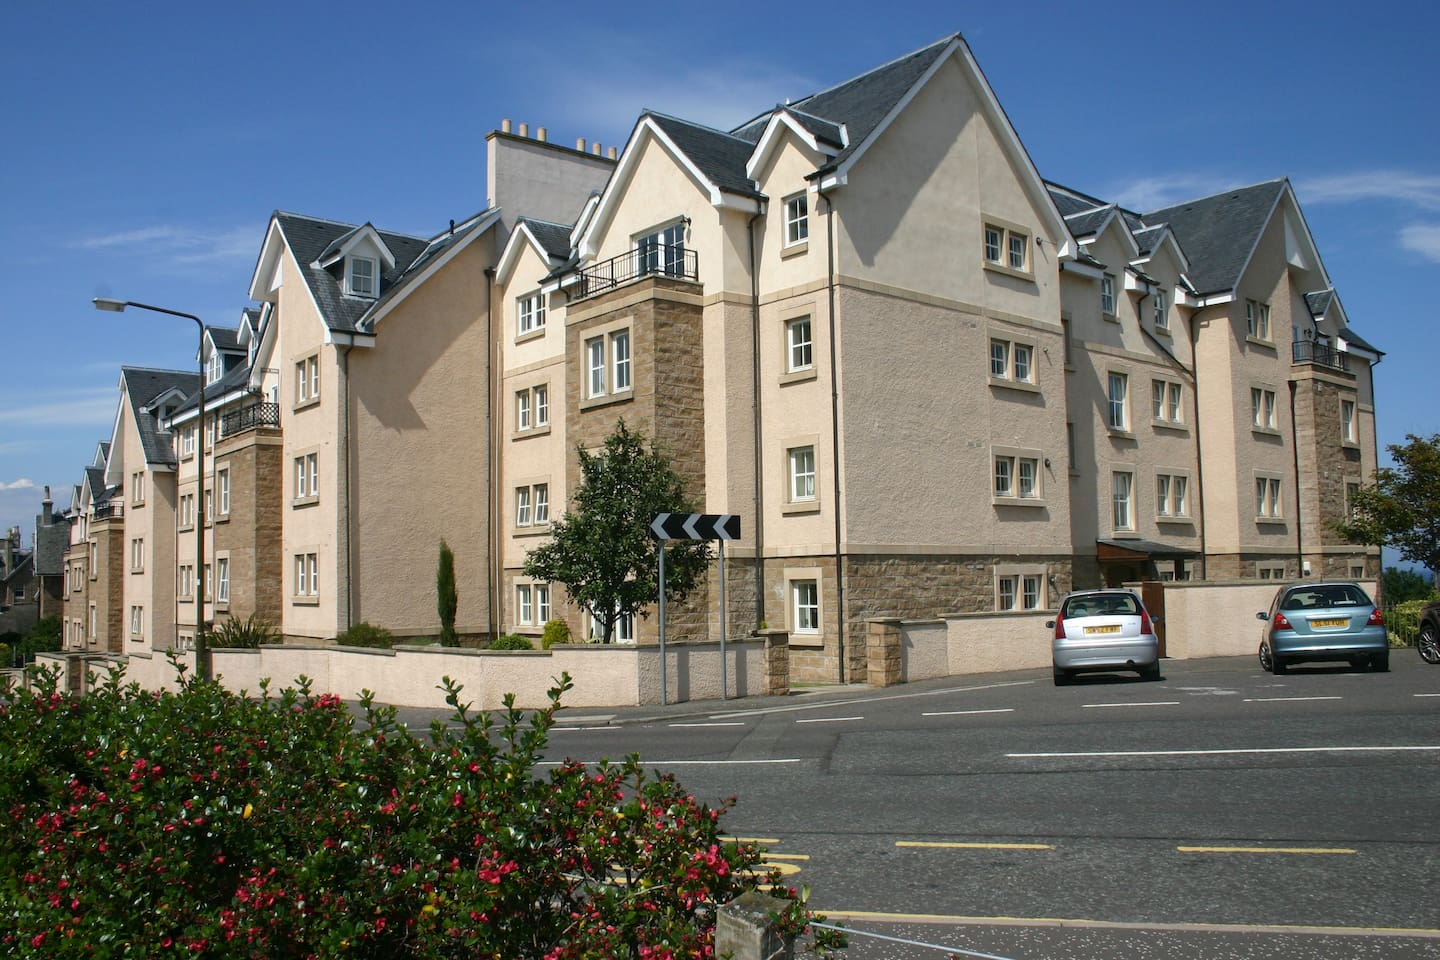 a modern apartment block close to the town centre